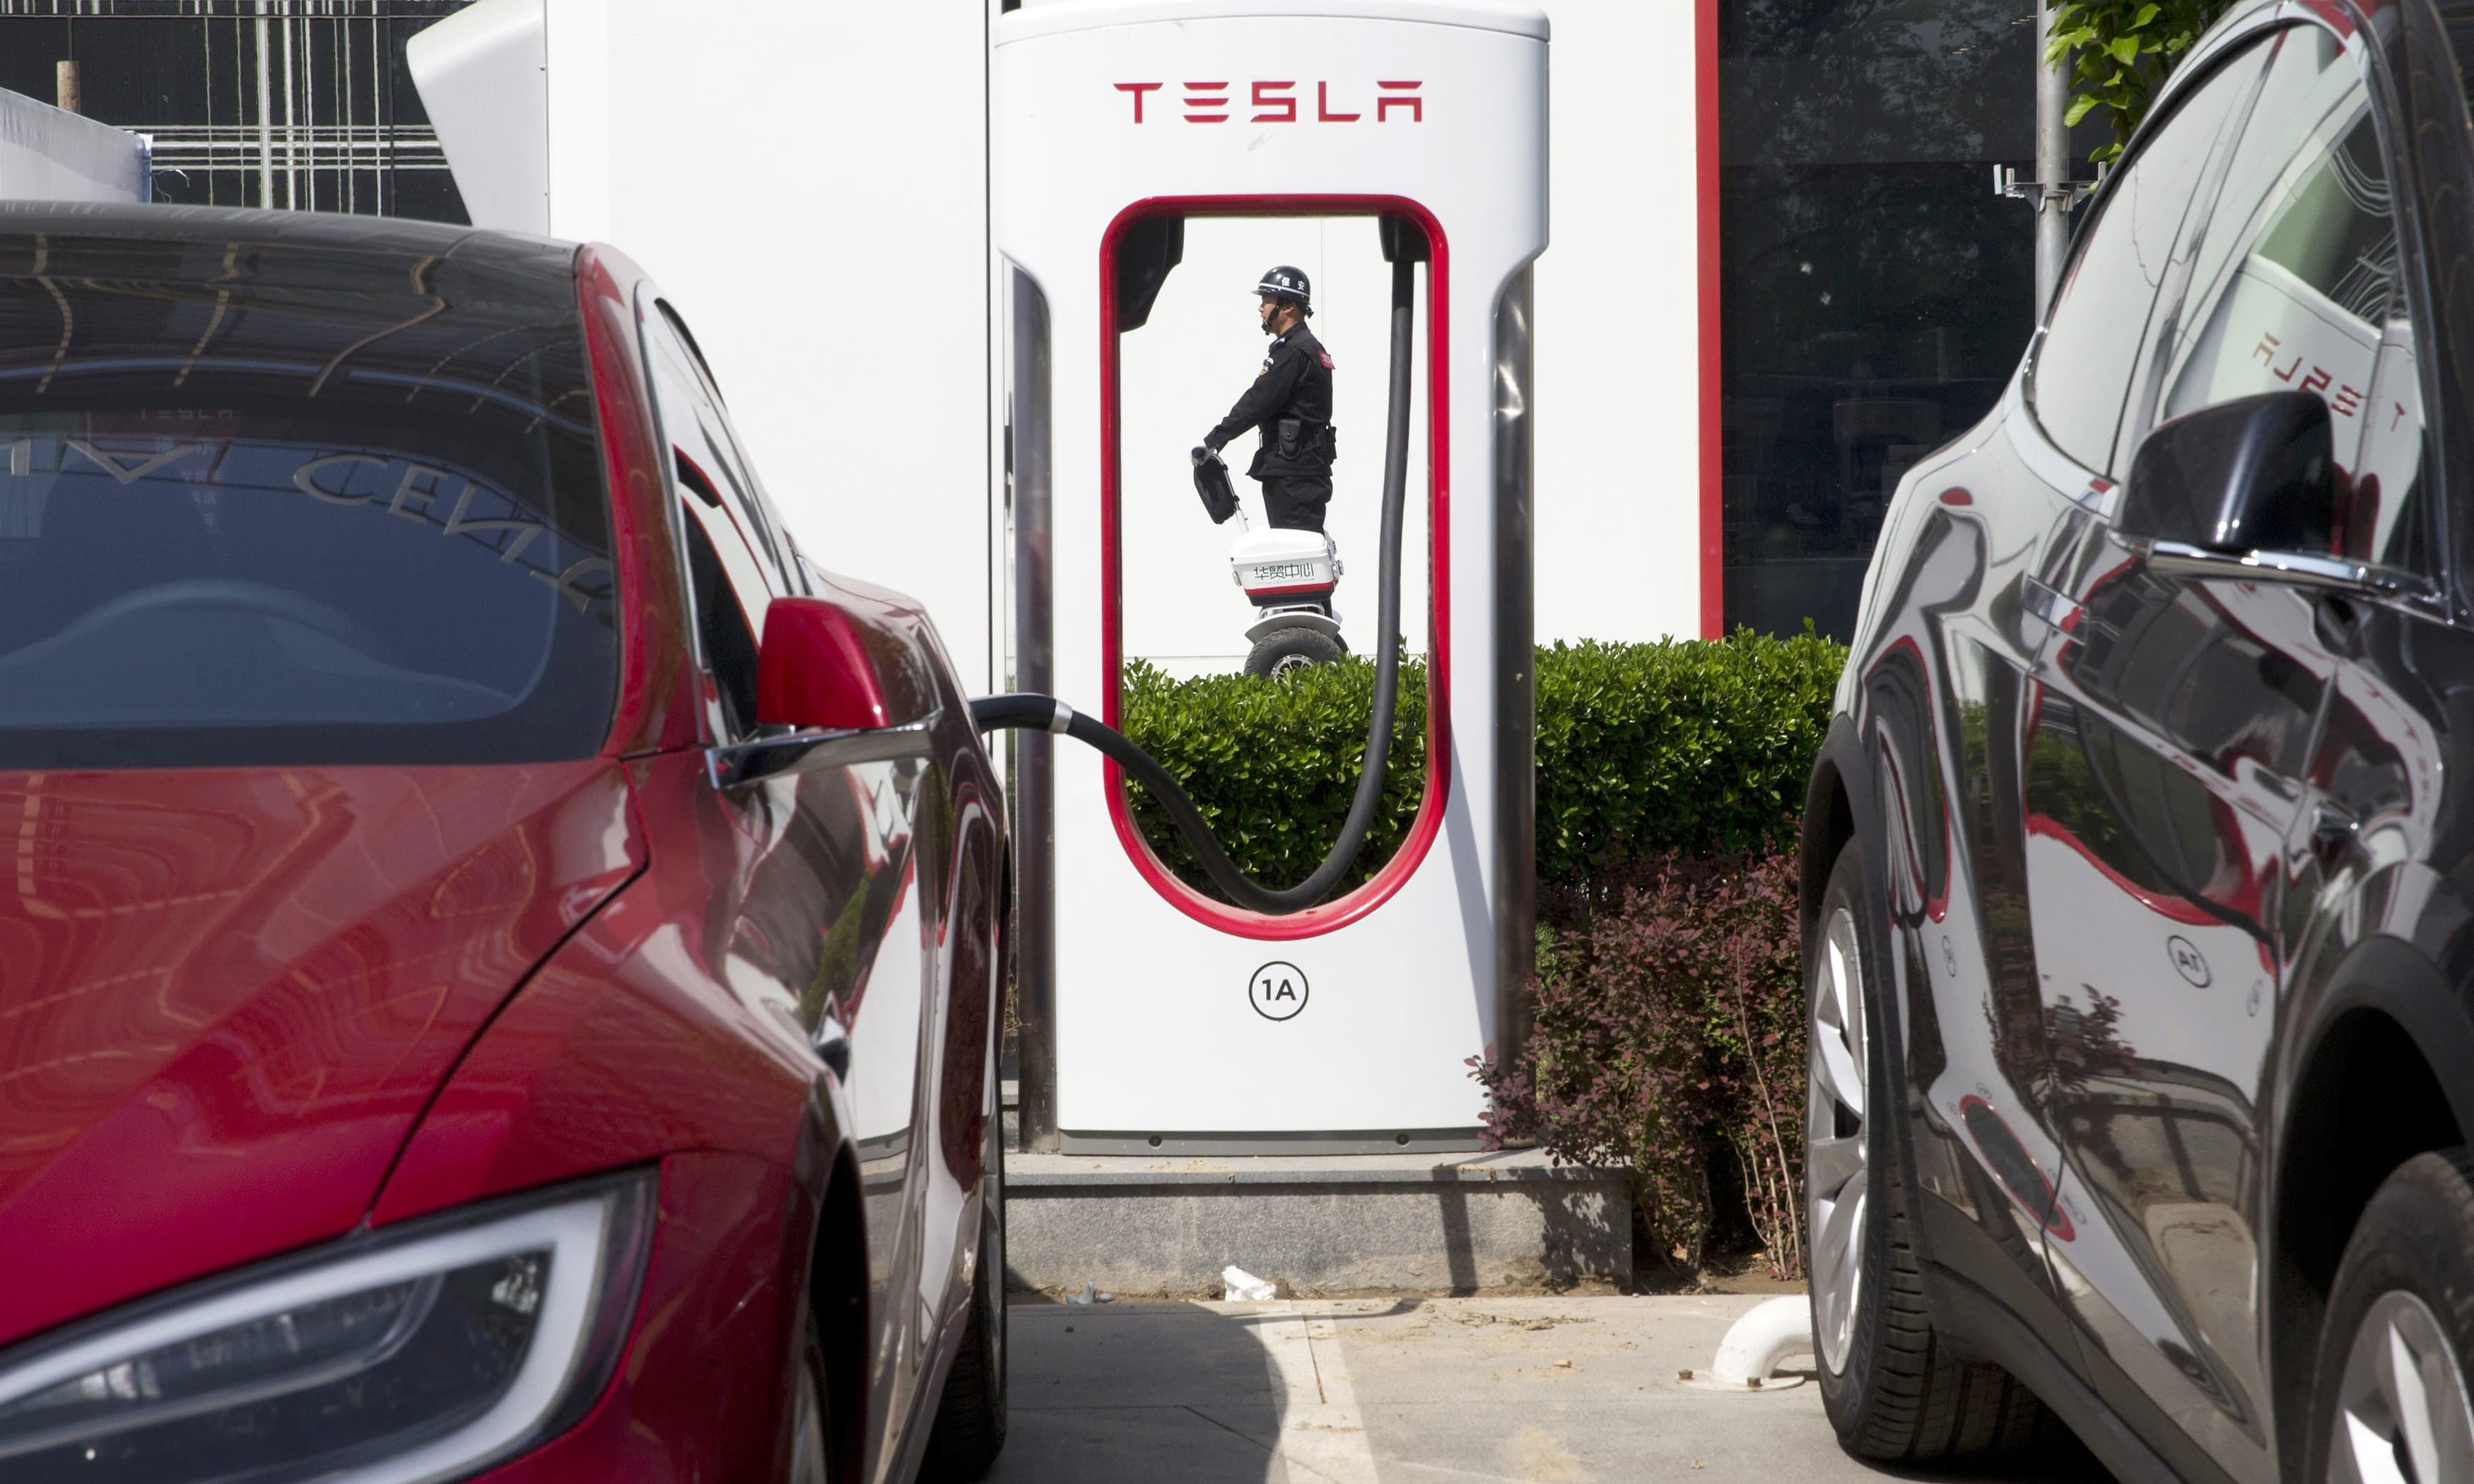 Tesla Gets Approval for Starting Manufacturing in China